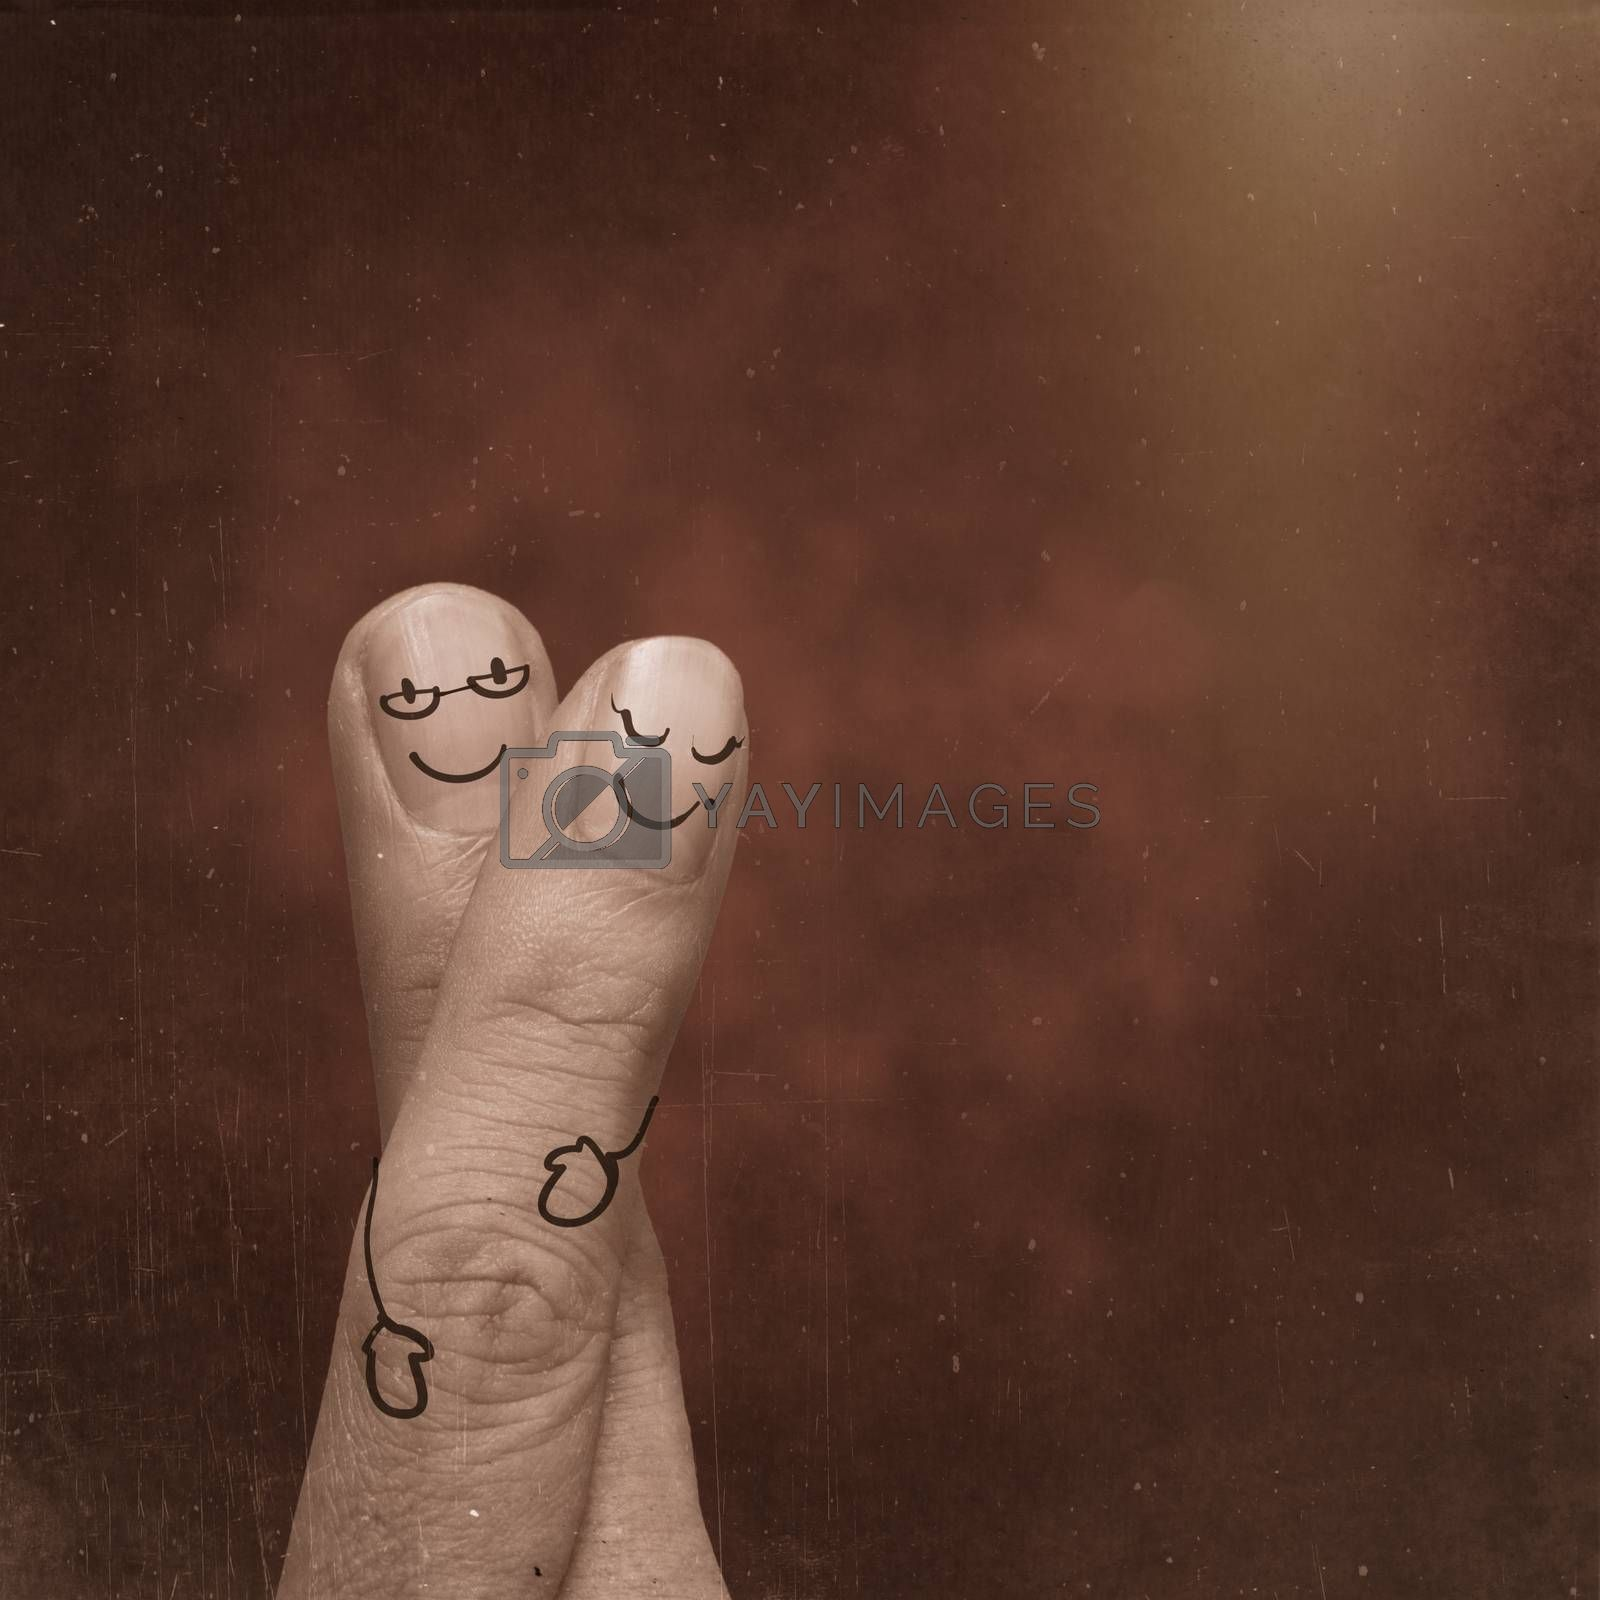 A happy couple in love with painted smiley and hugging as vintage style